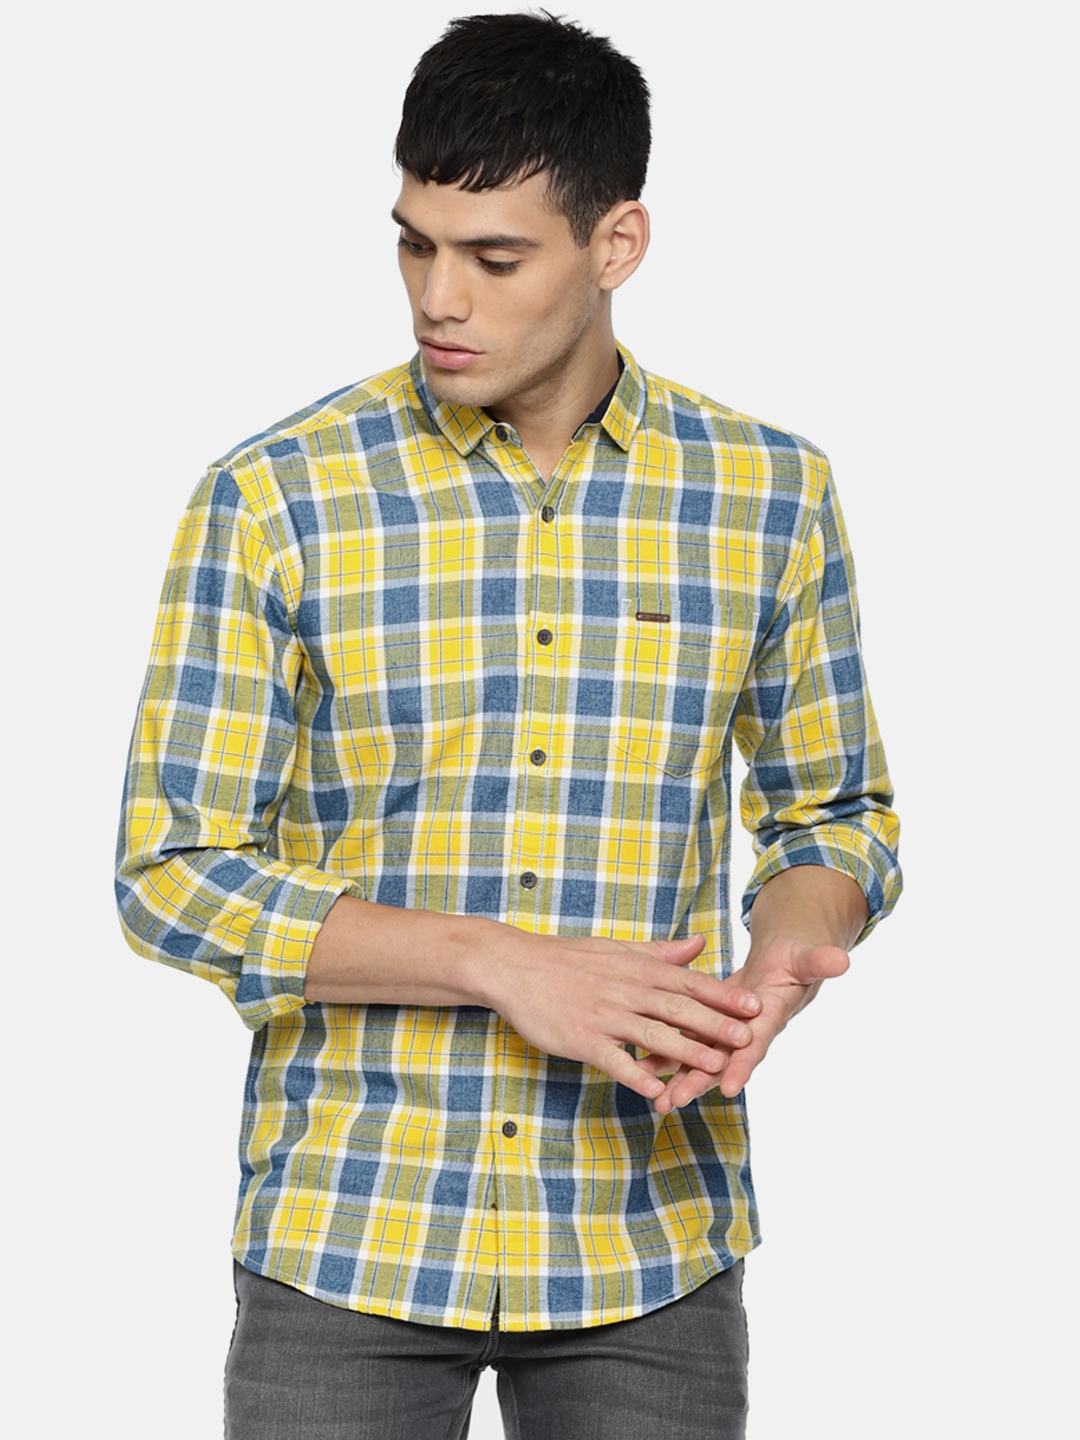 9a6724a5 Buy Wrangler Men Yellow & Blue Slim Fit Checked Casual Shirt ...